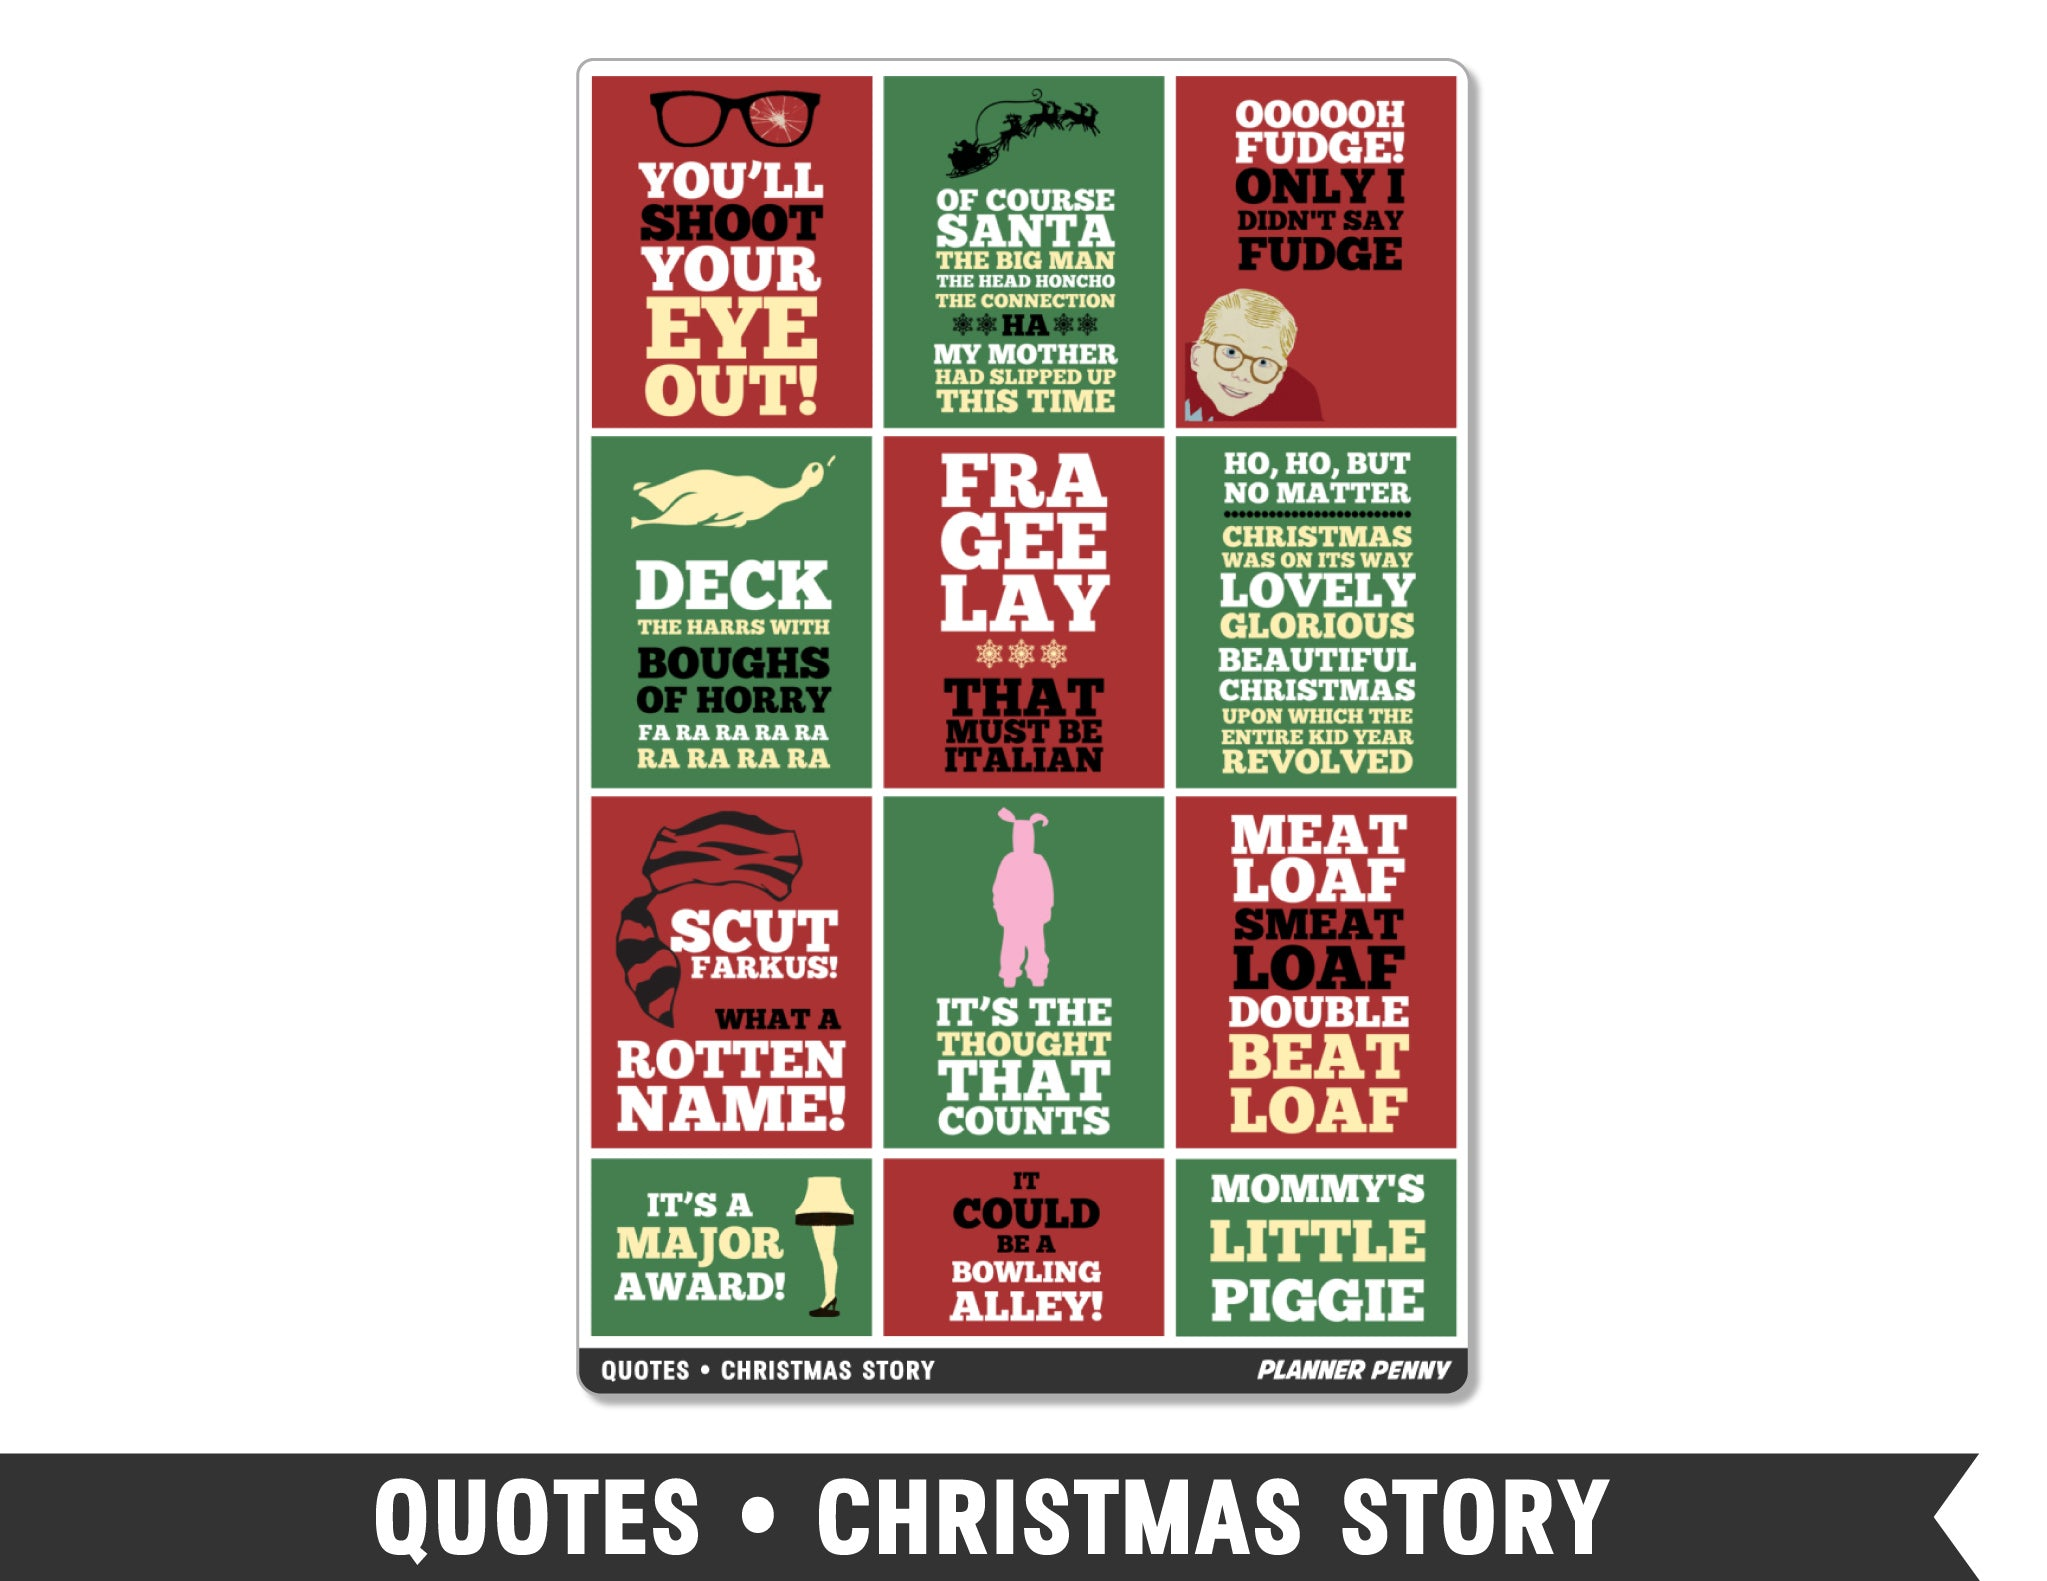 Quotes • Christmas Story Full Box Planner Stickers - Planner Penny